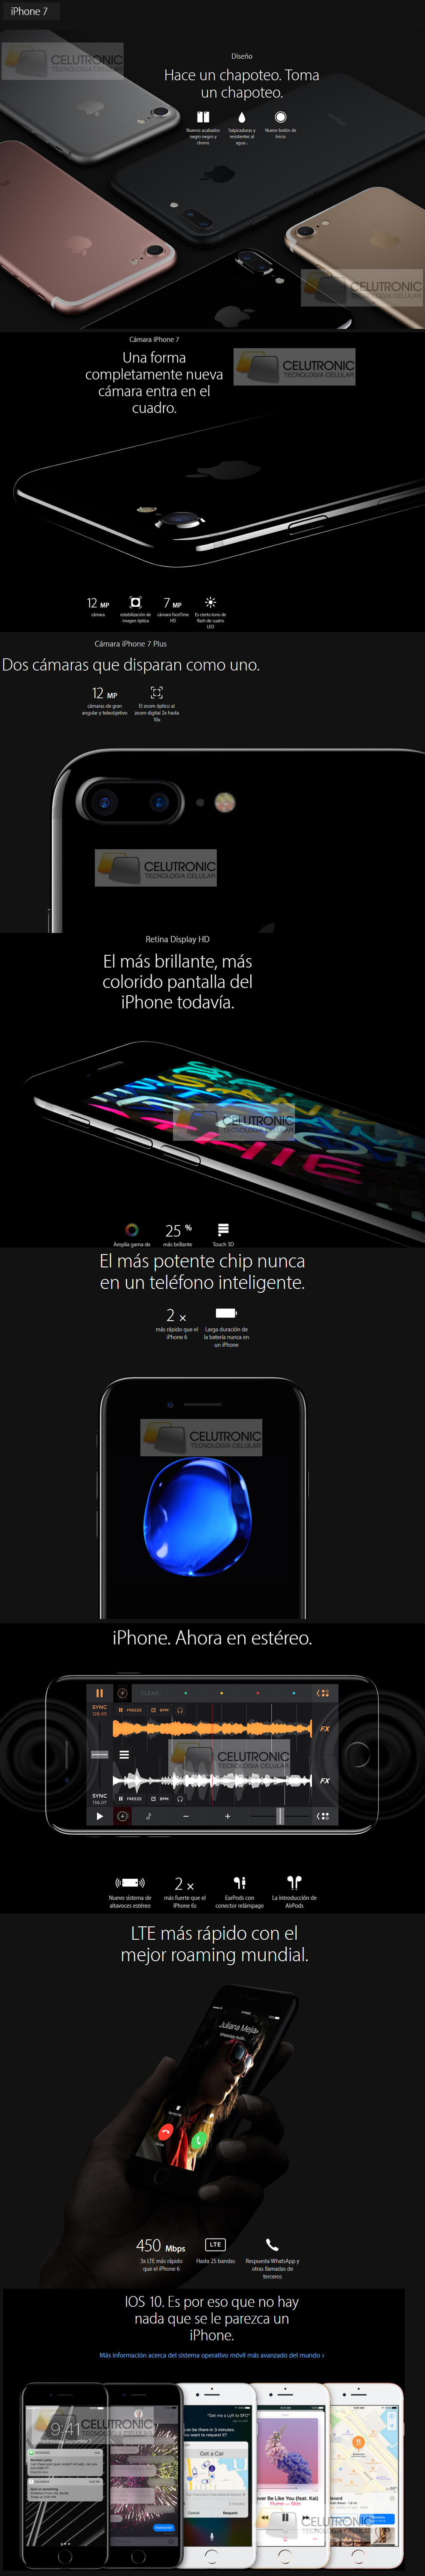 apple iphone 7 en argentina